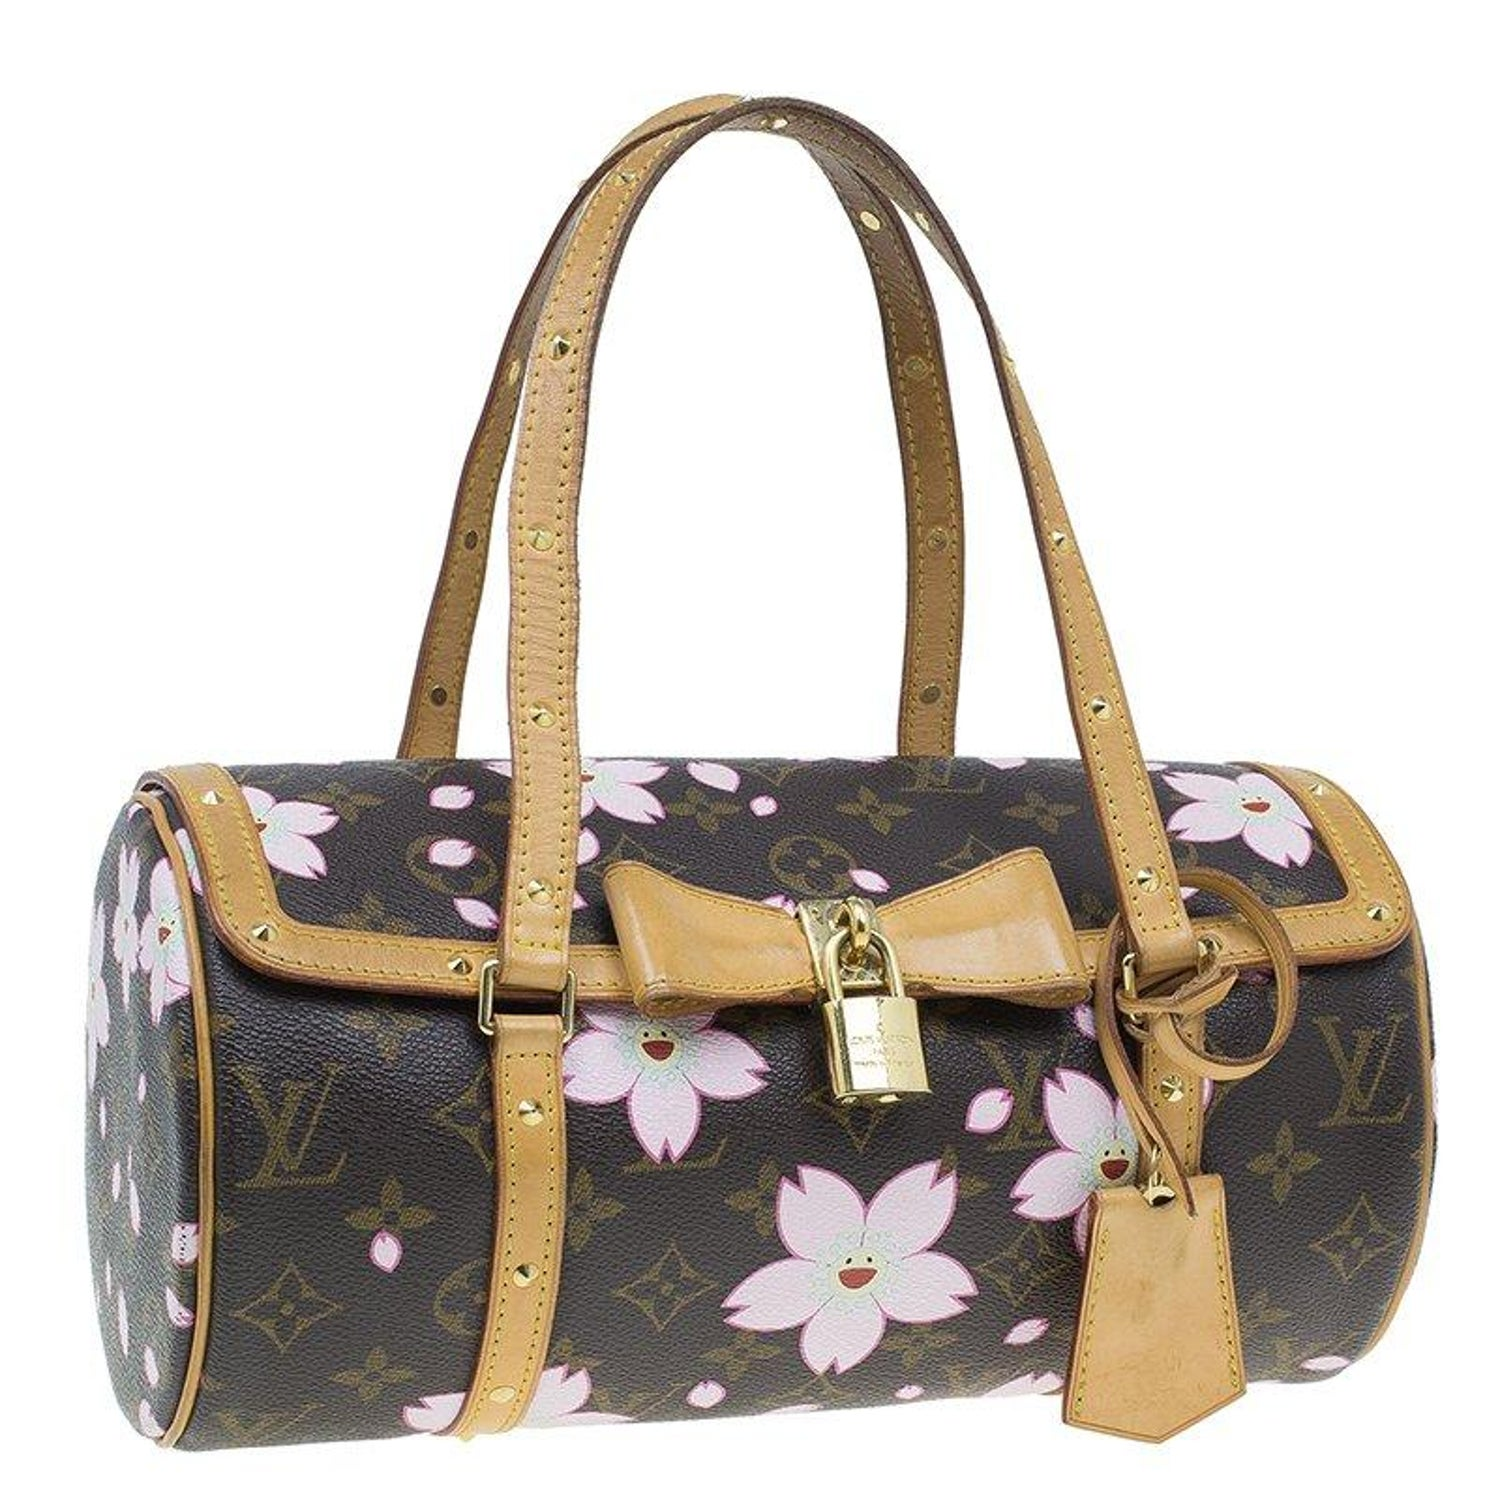 88144ef4bad Louis Vuitton Monogram Canvas Limited Edition Cherry Blossom Papillon Bag  at 1stdibs